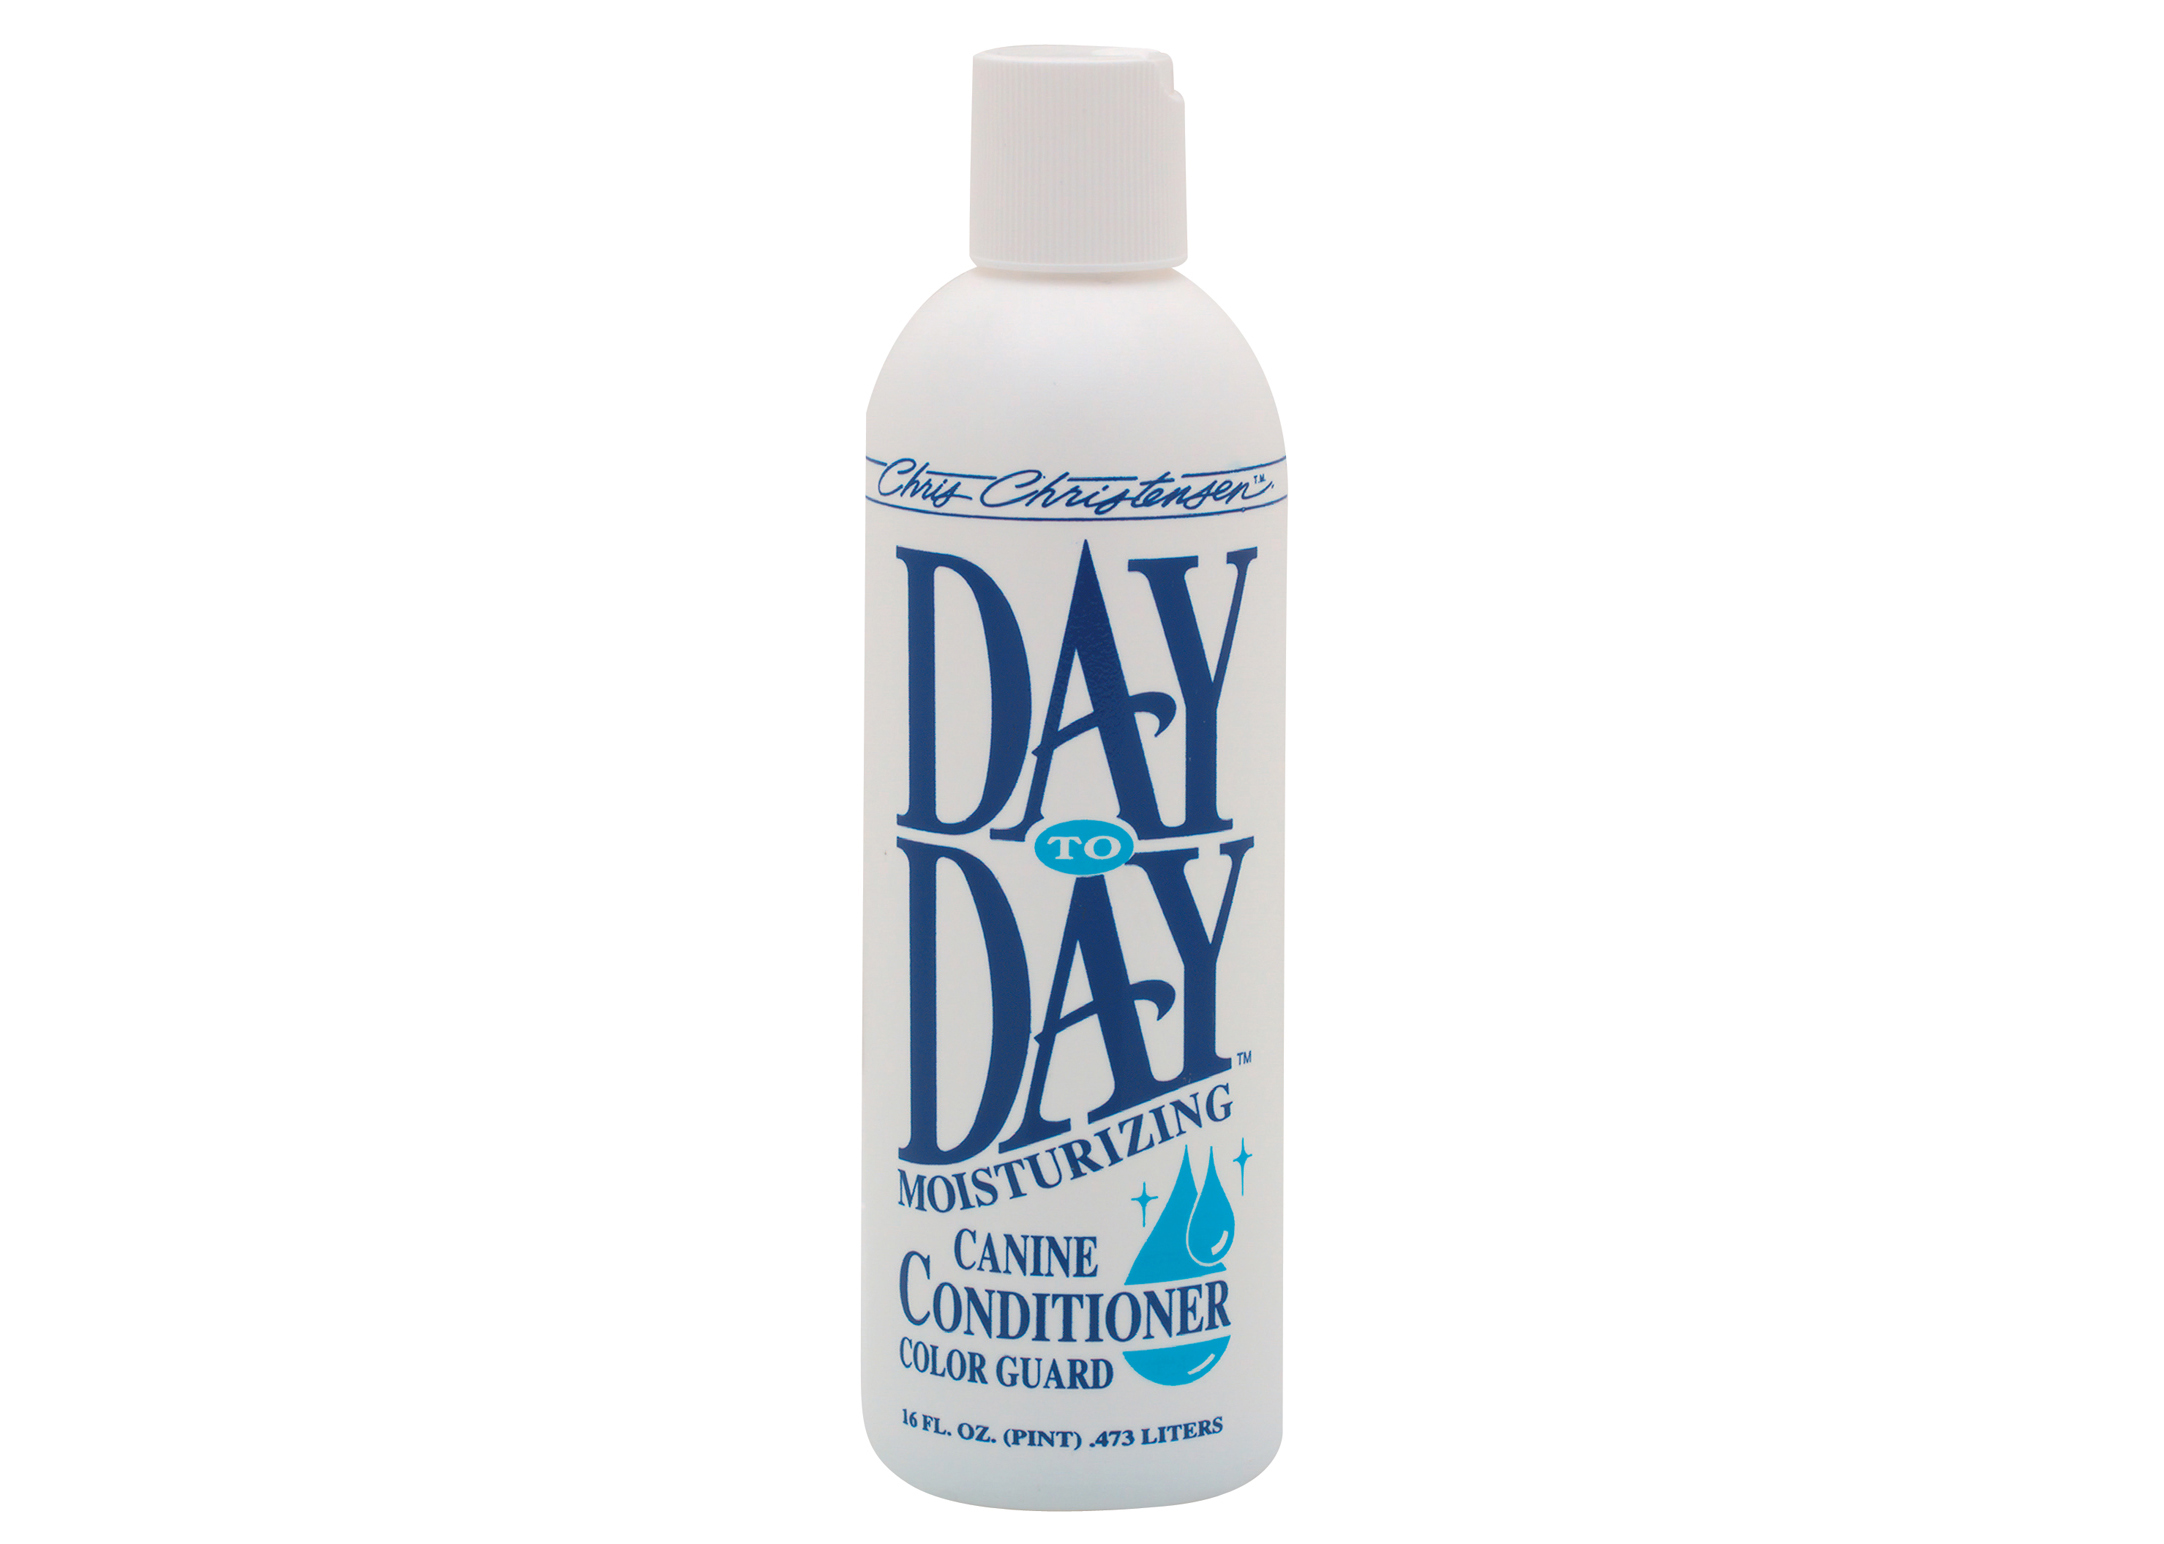 Chris Christensen Systems Day to Day Moisturizing Conditioner For Dogs, Cats And Horses